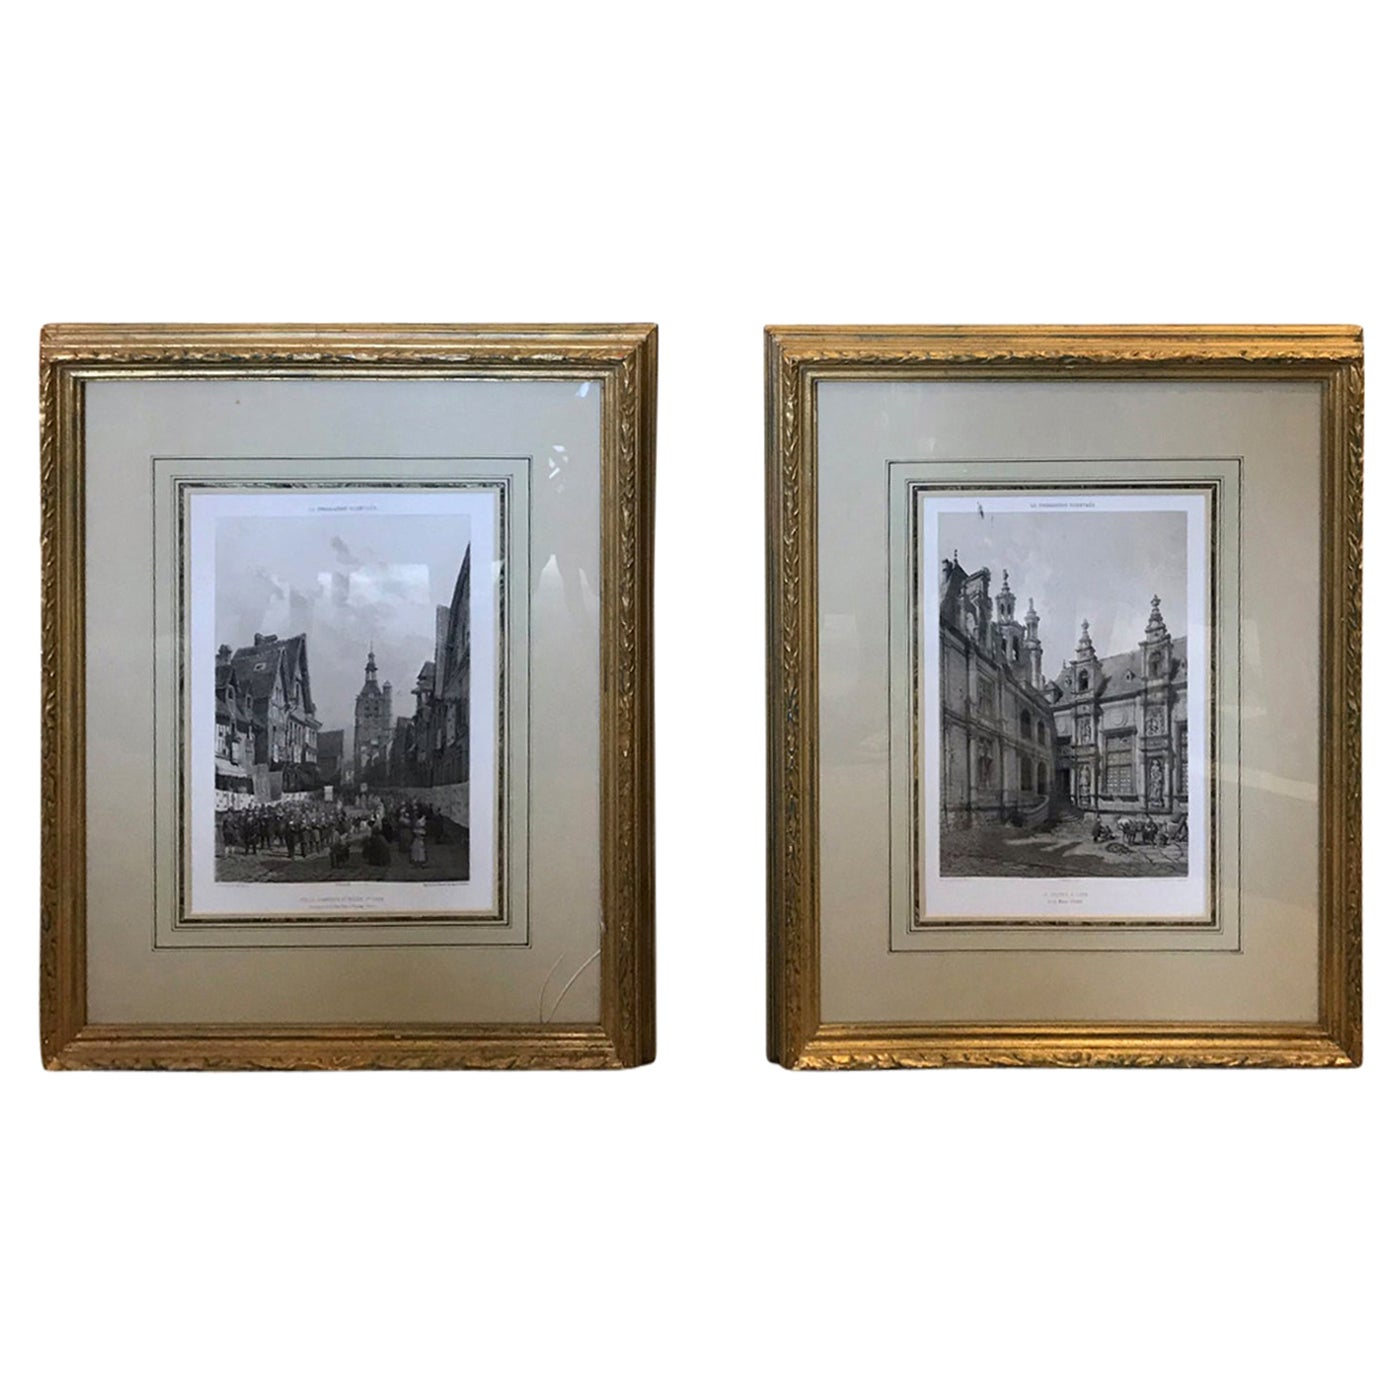 Pair of 19th-20th Century French Engravings of Normandy in Giltwood Frames